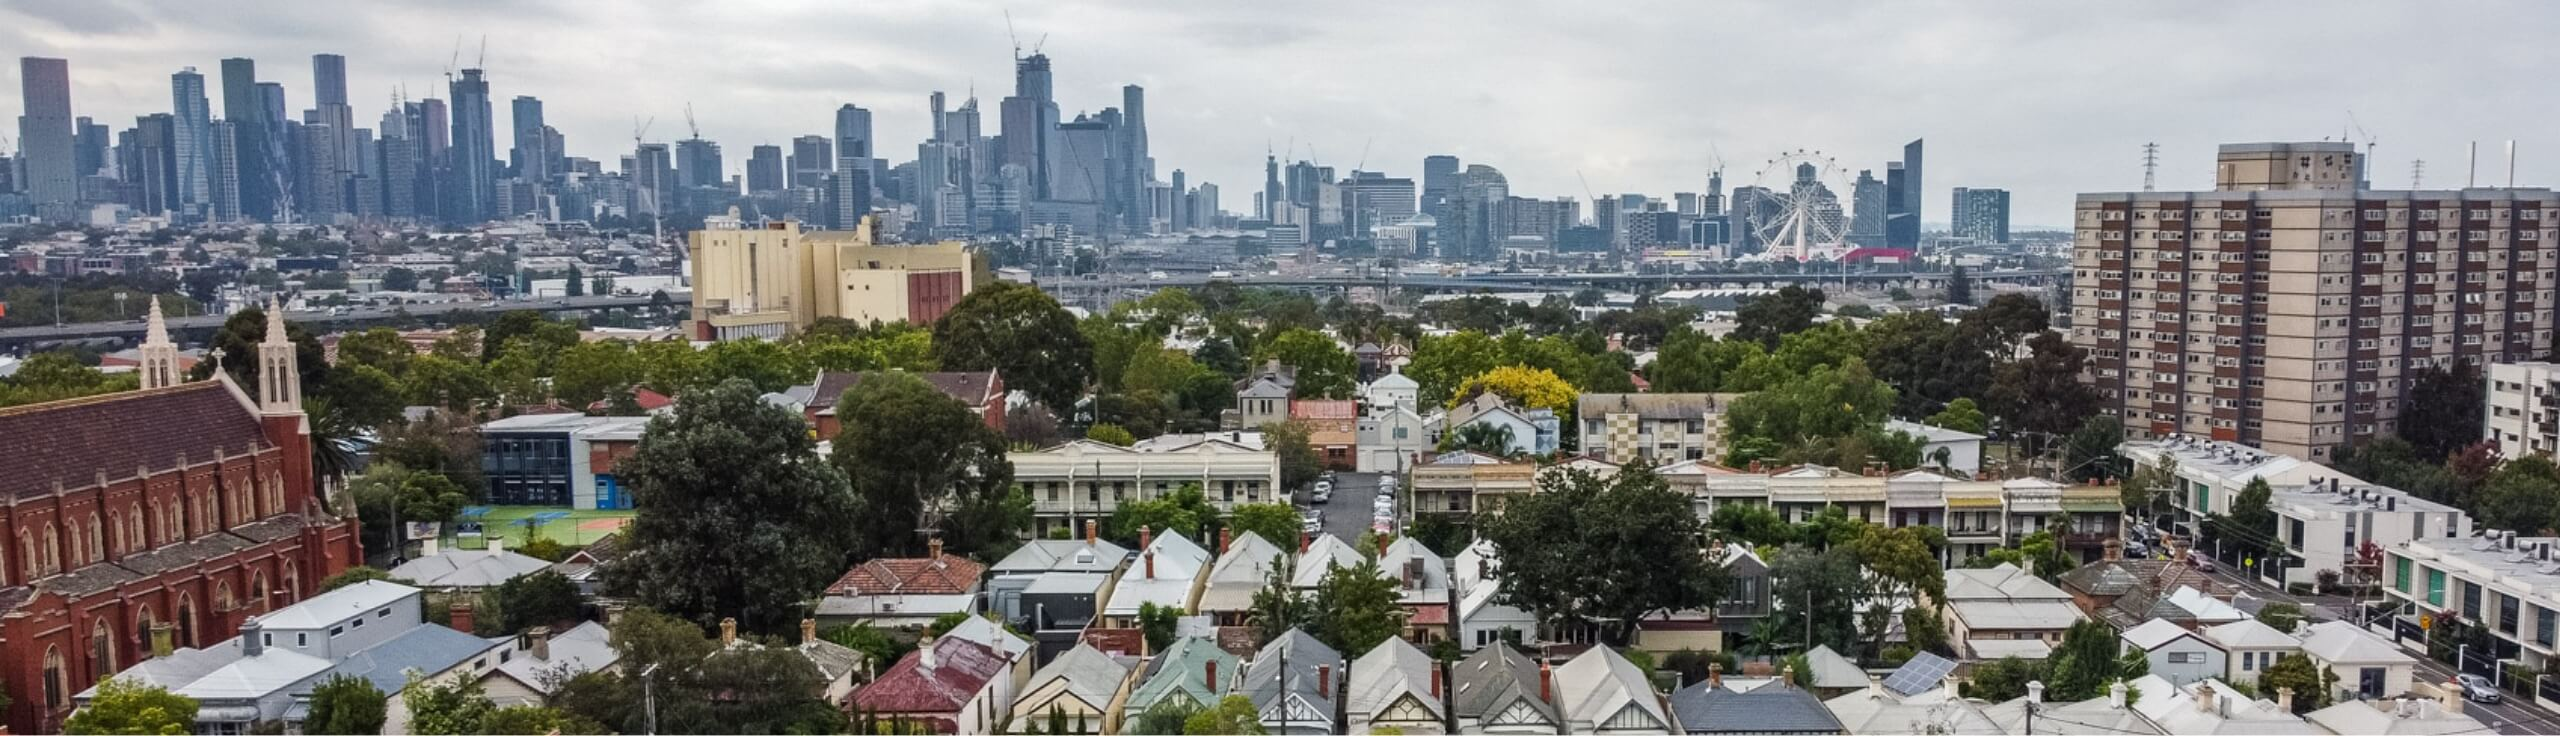 Rooftop image of Melbourne's Western suburbs